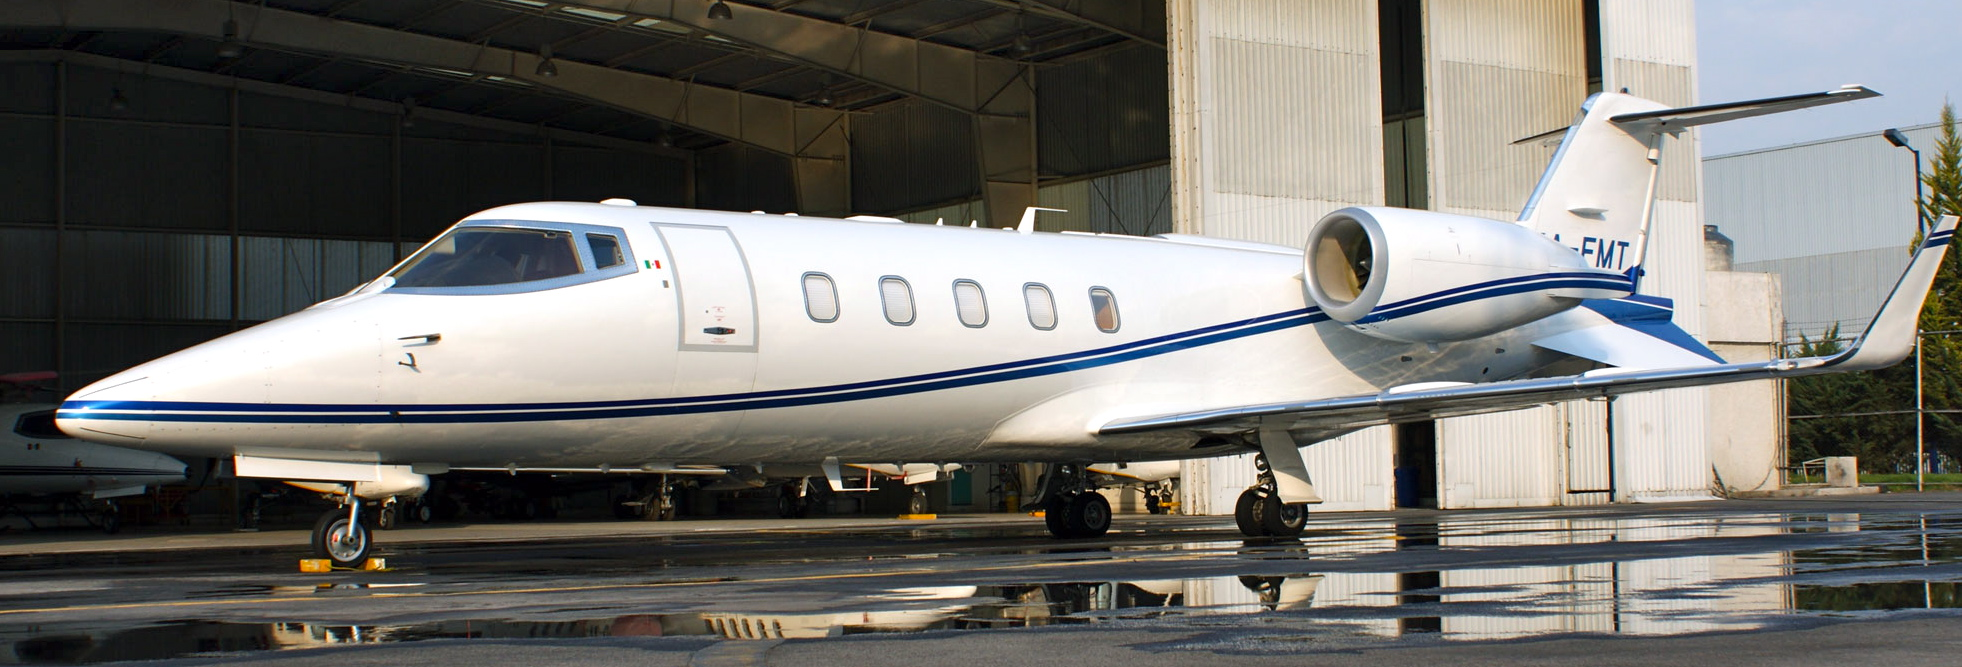 2008 Learjet 60XR sn 337